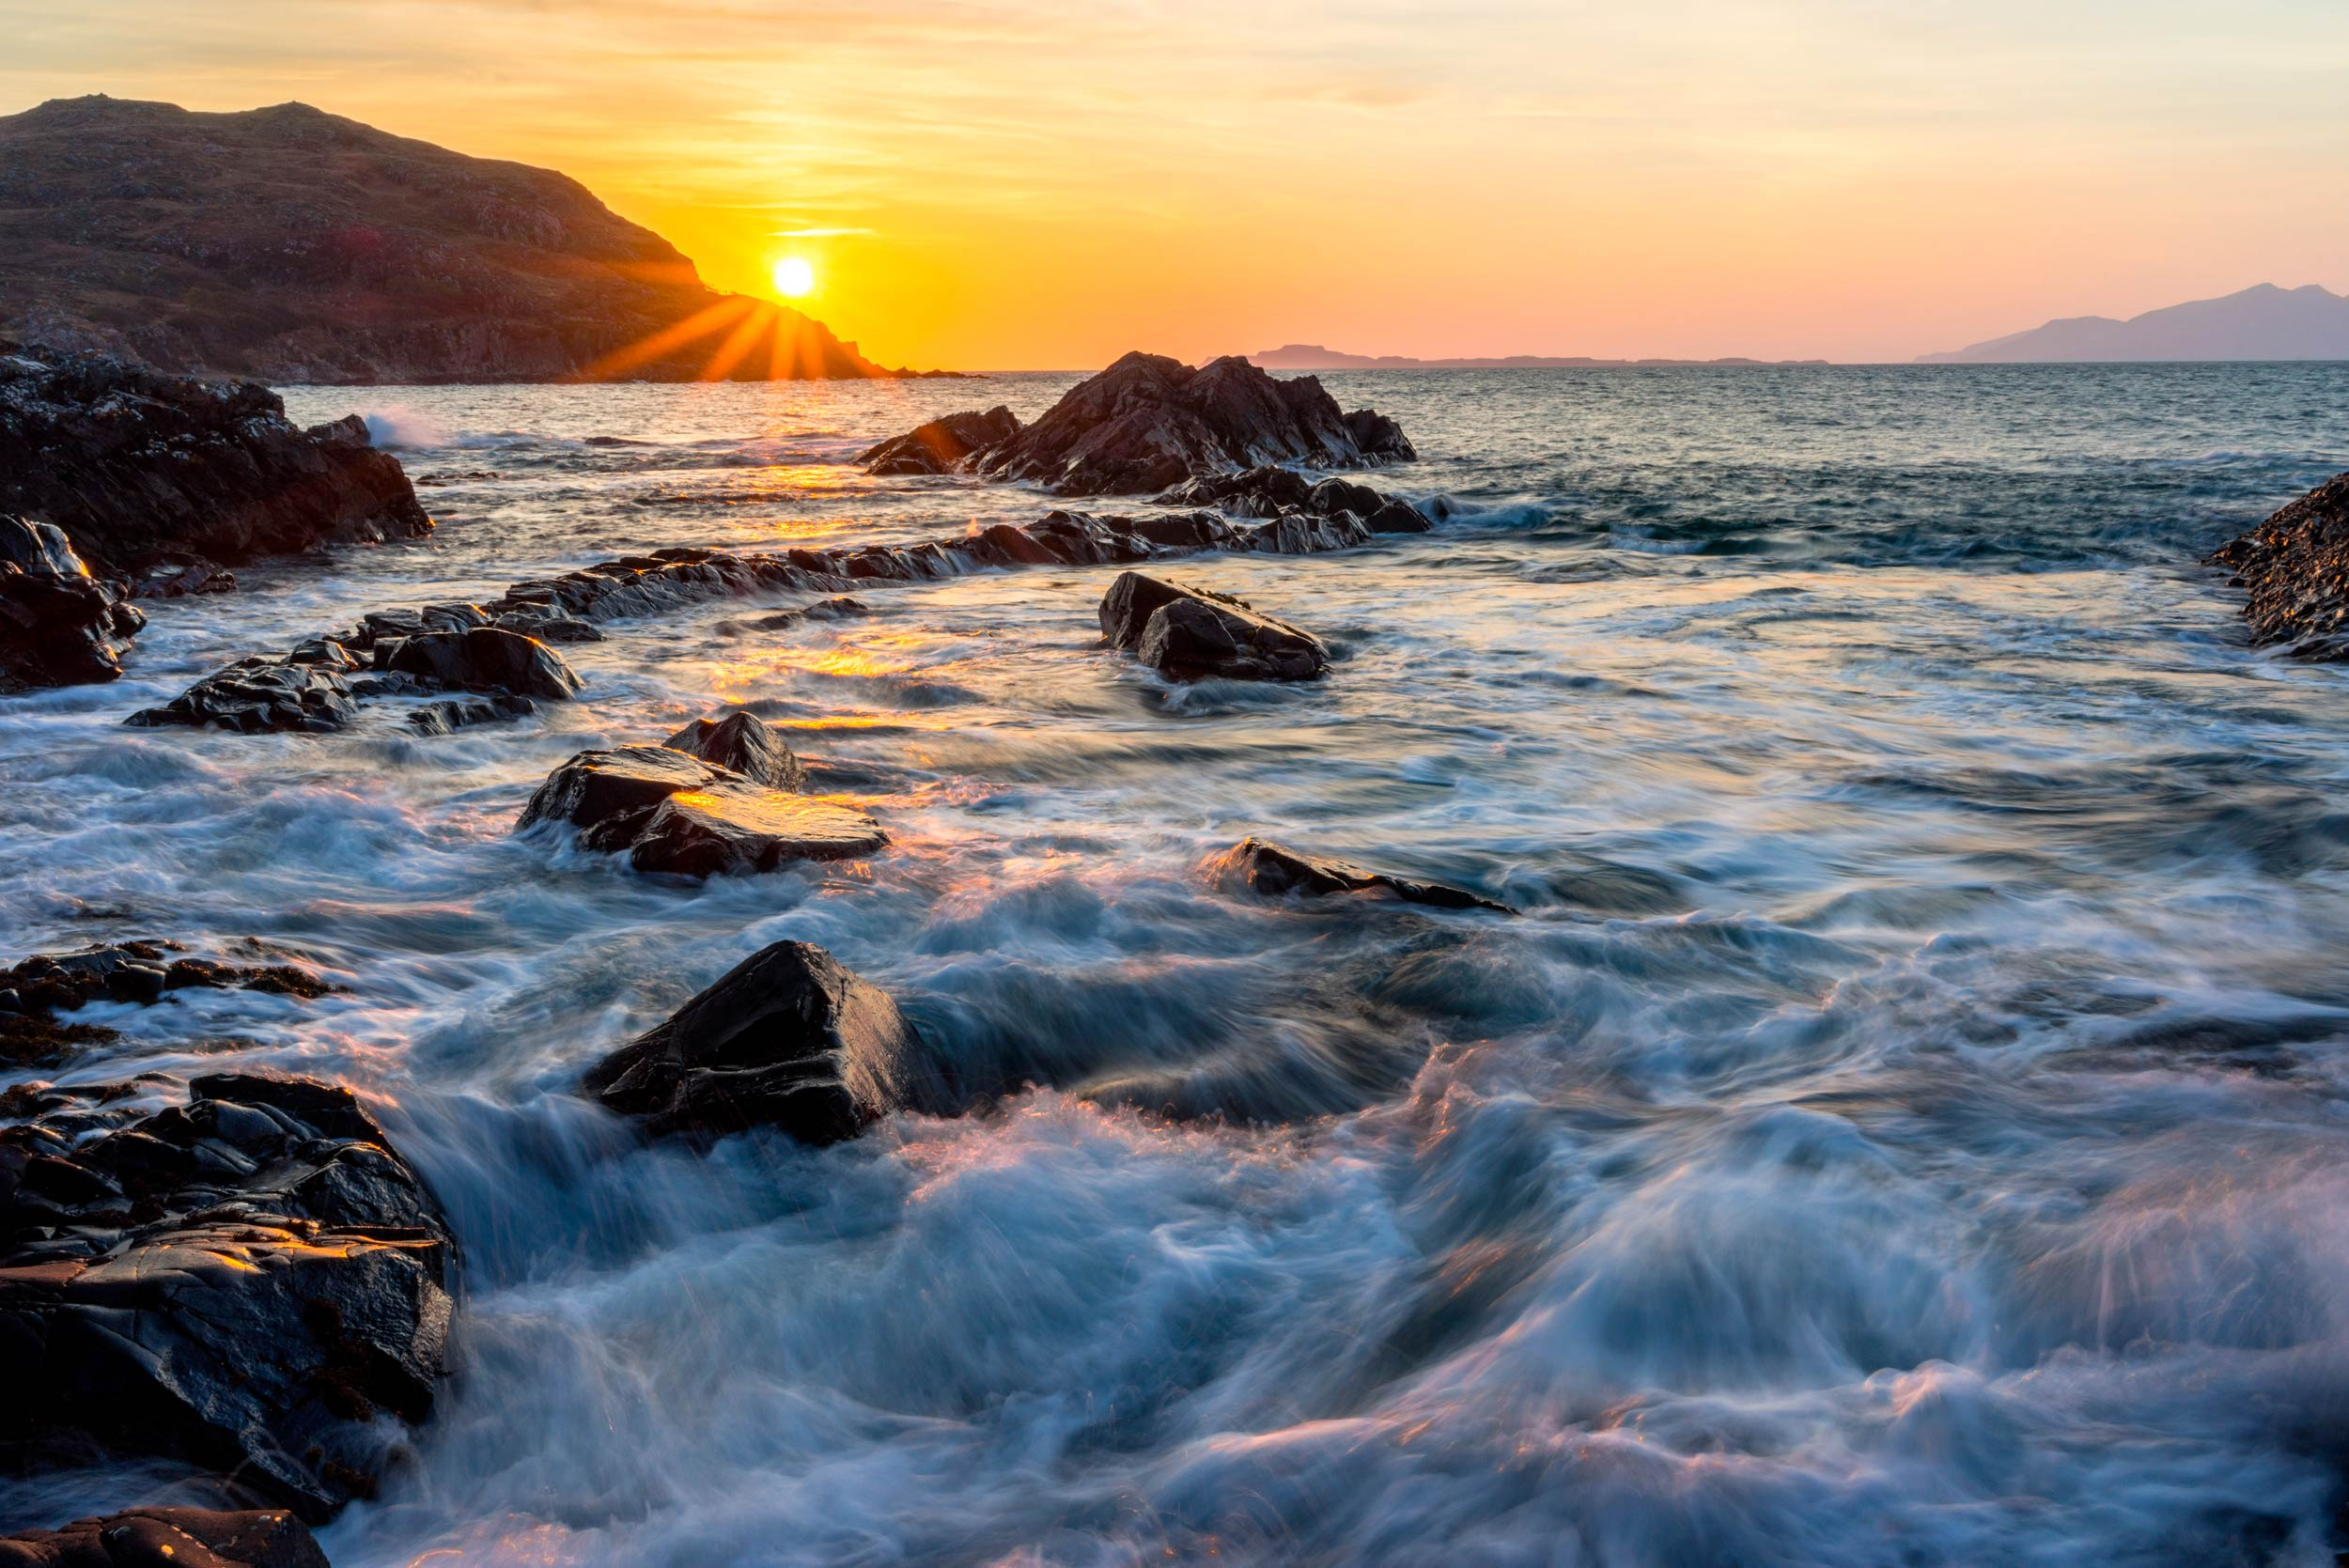 A very thrilling sunset somewhere in the vicinity of Morar, Moidart & Ardnamurchan, on Scotland's west coast  (Adam Major/Shutterstock)